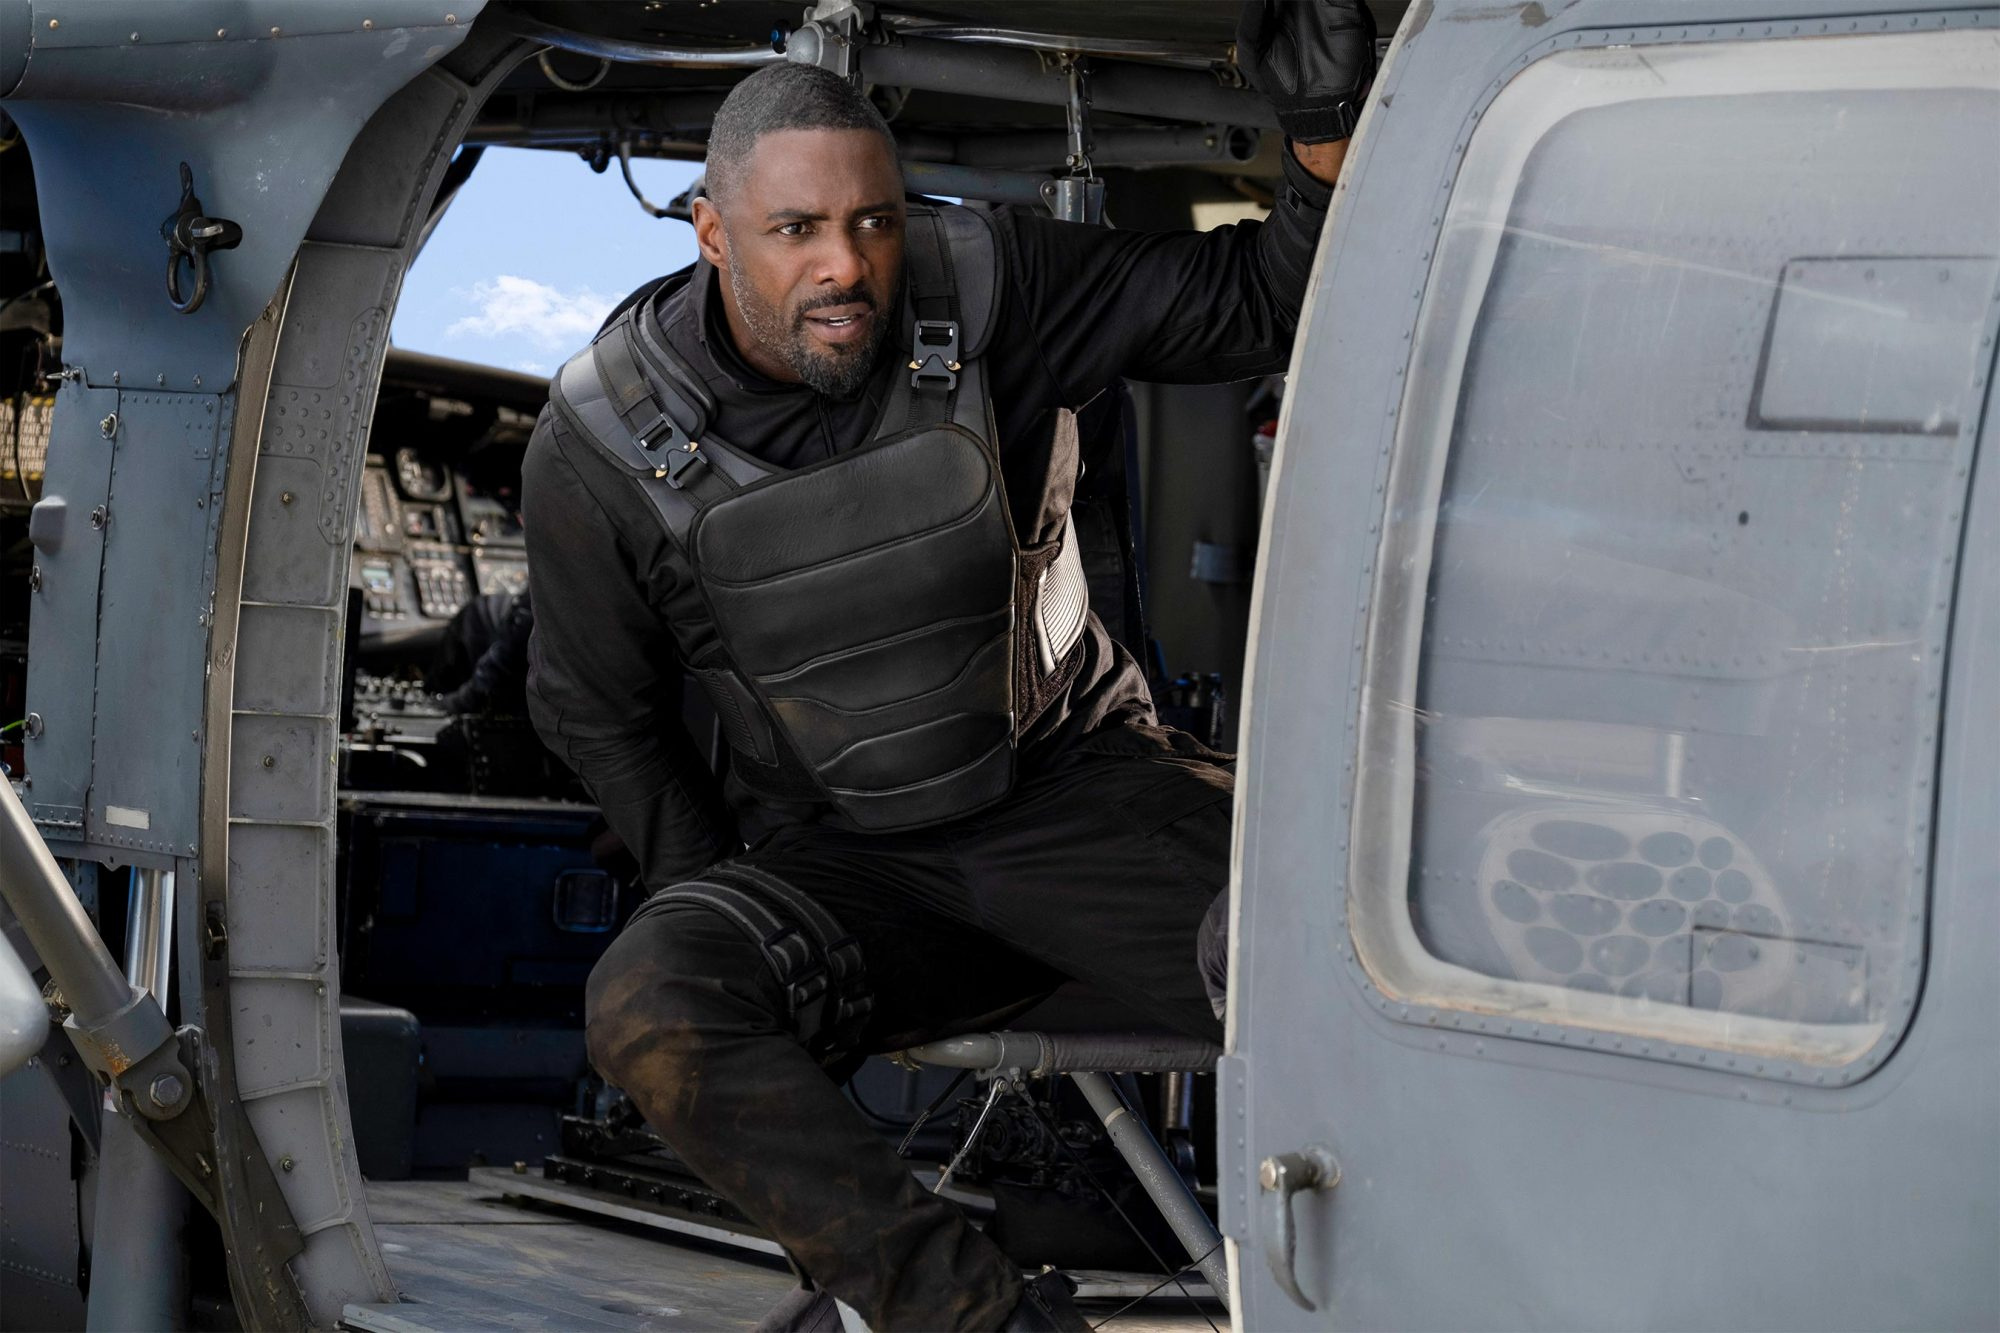 """Idris Elba as Brixton Lorr in """"Fast & Furious Presents: Hobbs & Shaw,"""" directed by David Leitch."""